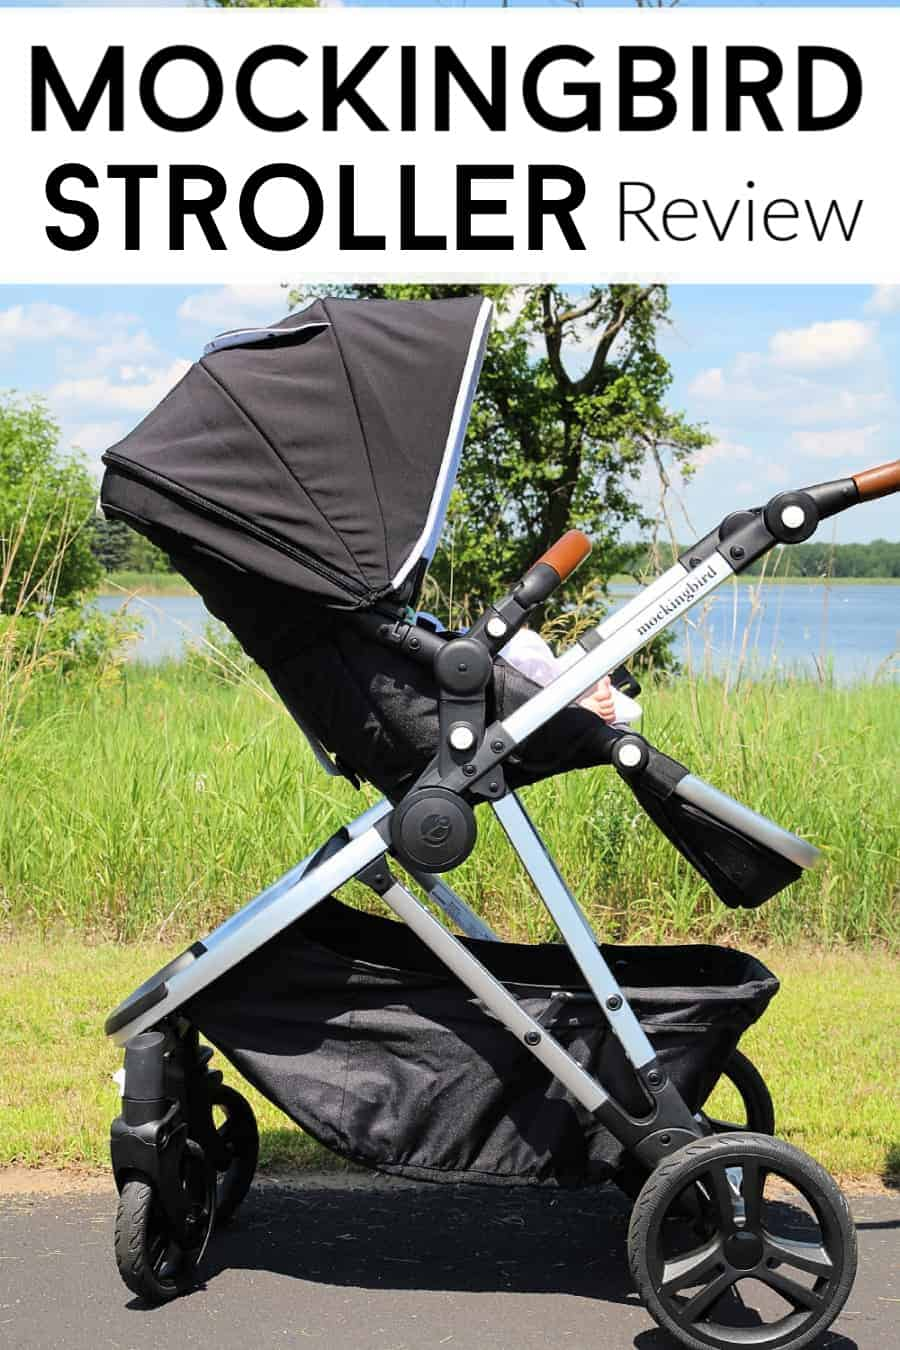 Mockingbird Stroller Review - Why You Need This Stroller!